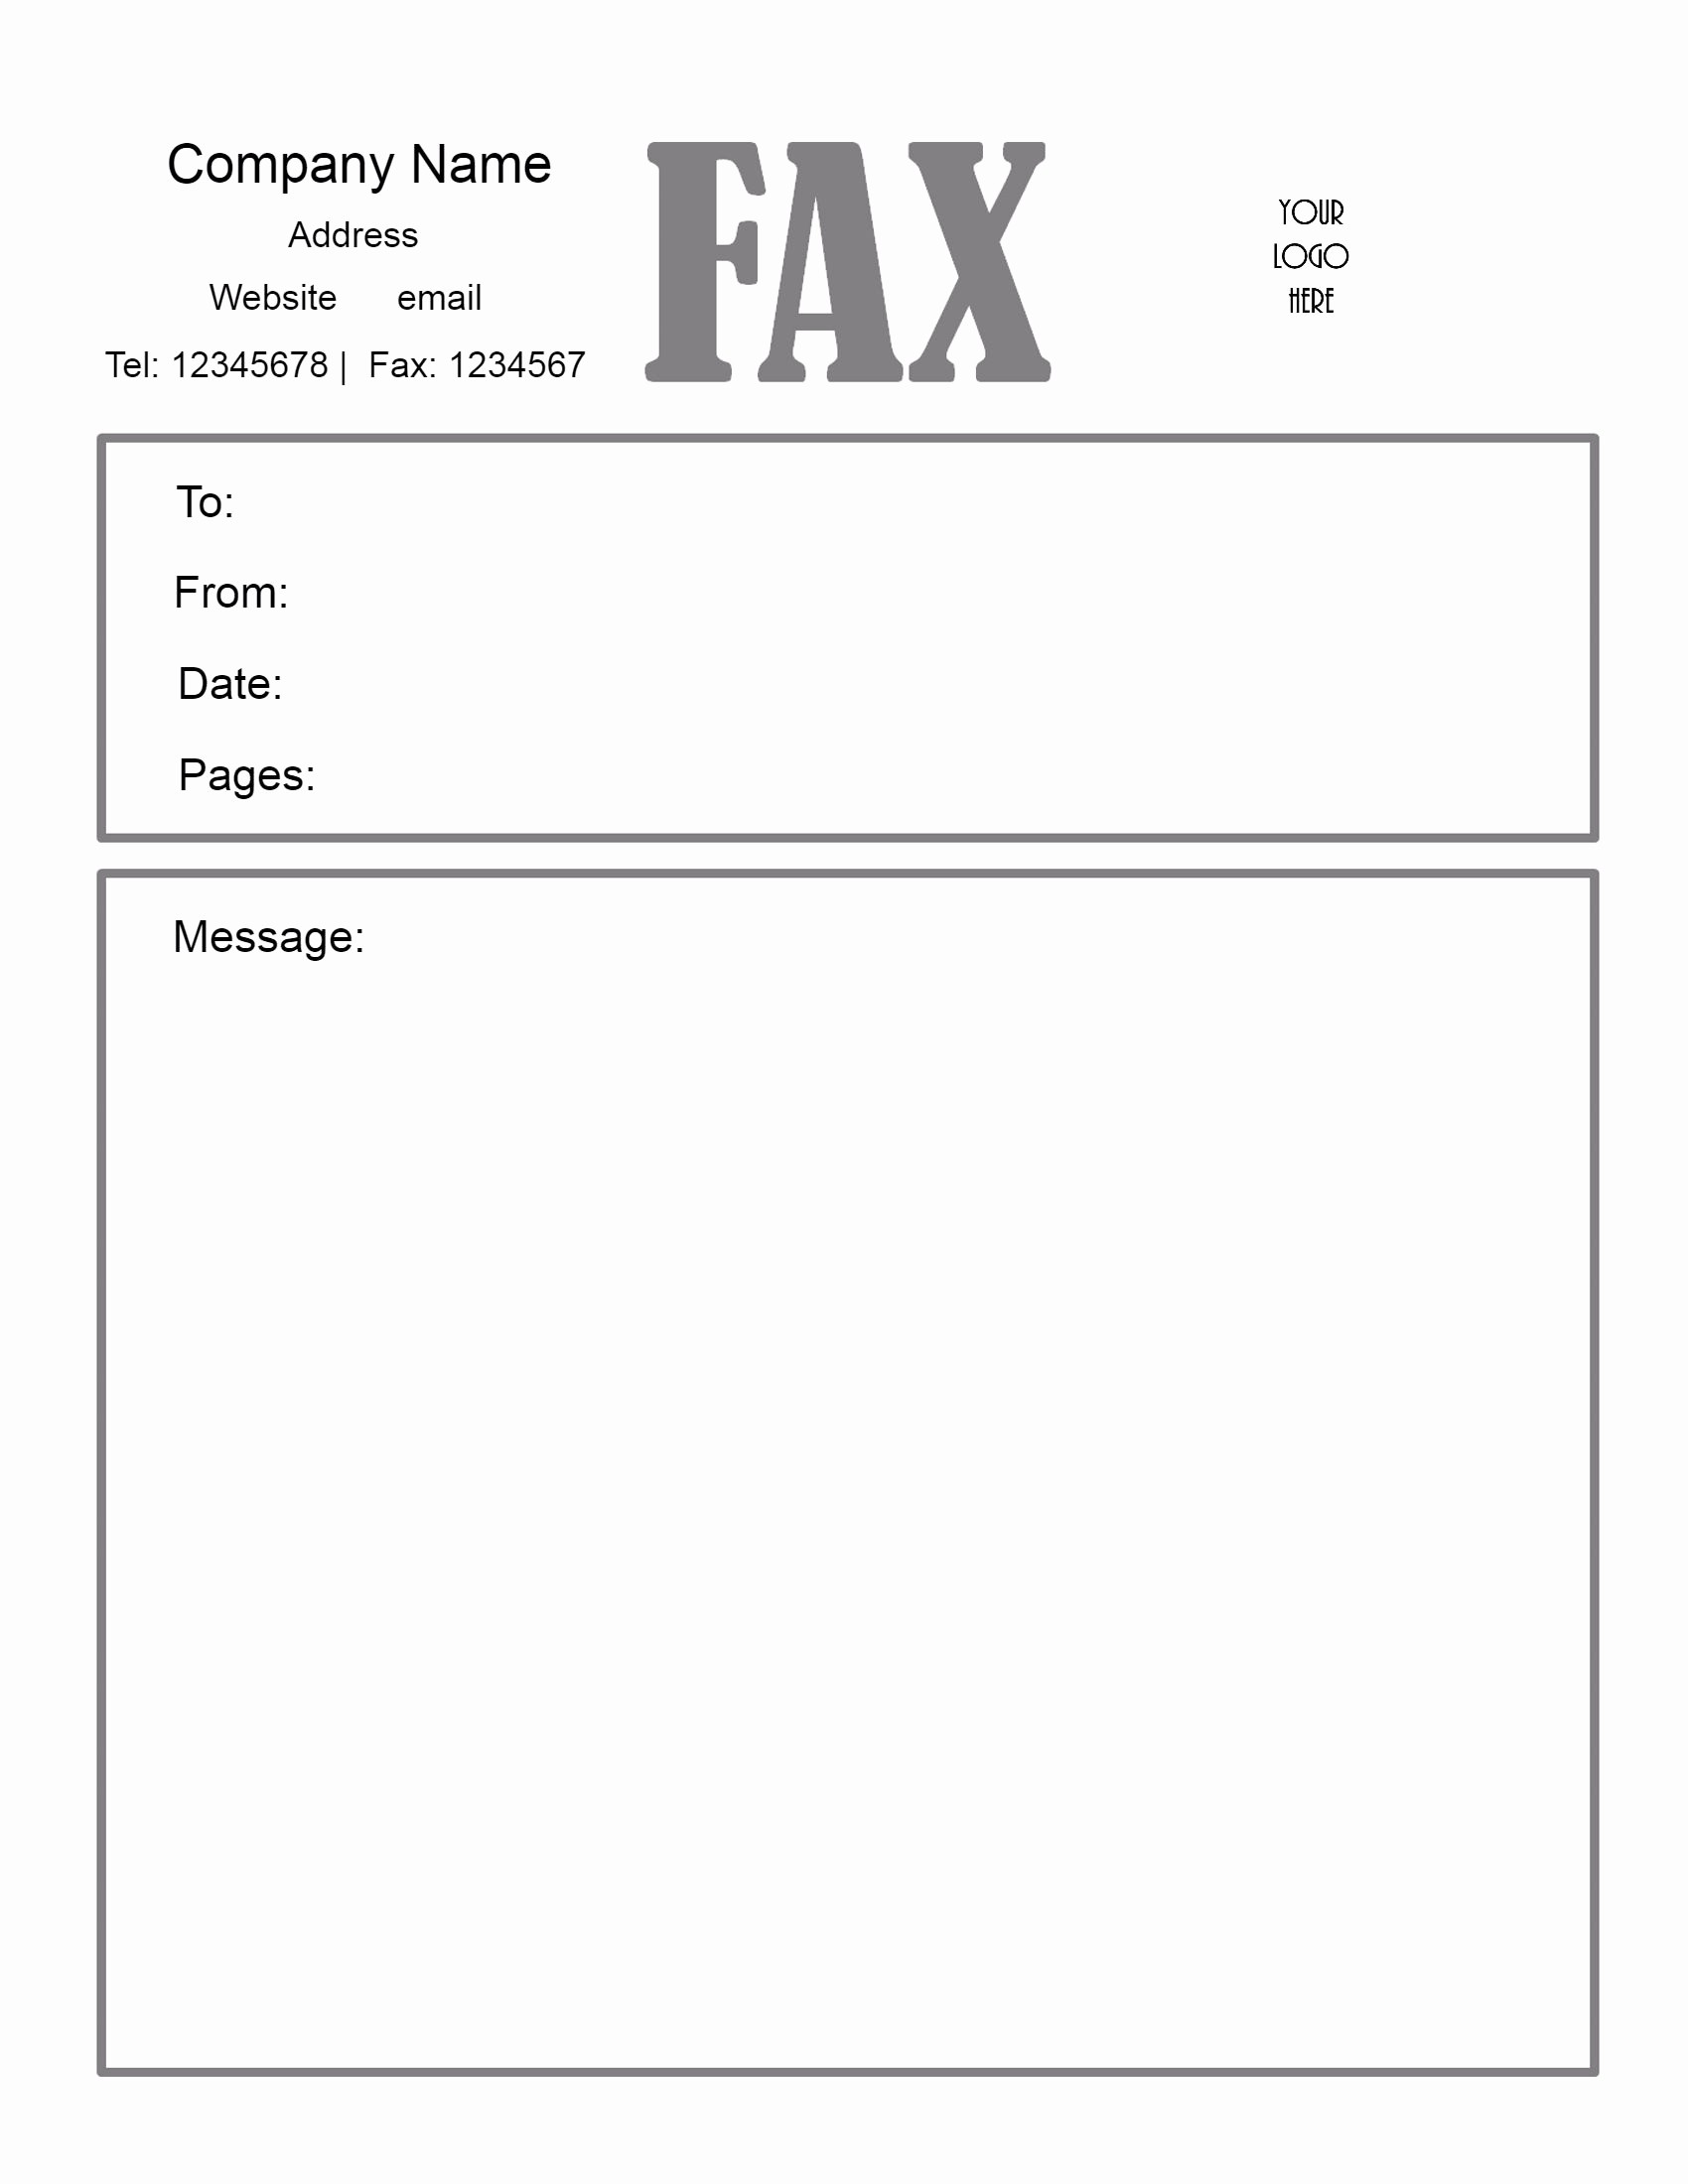 Print A Fax Cover Sheet Elegant Free Fax Cover Sheet Template